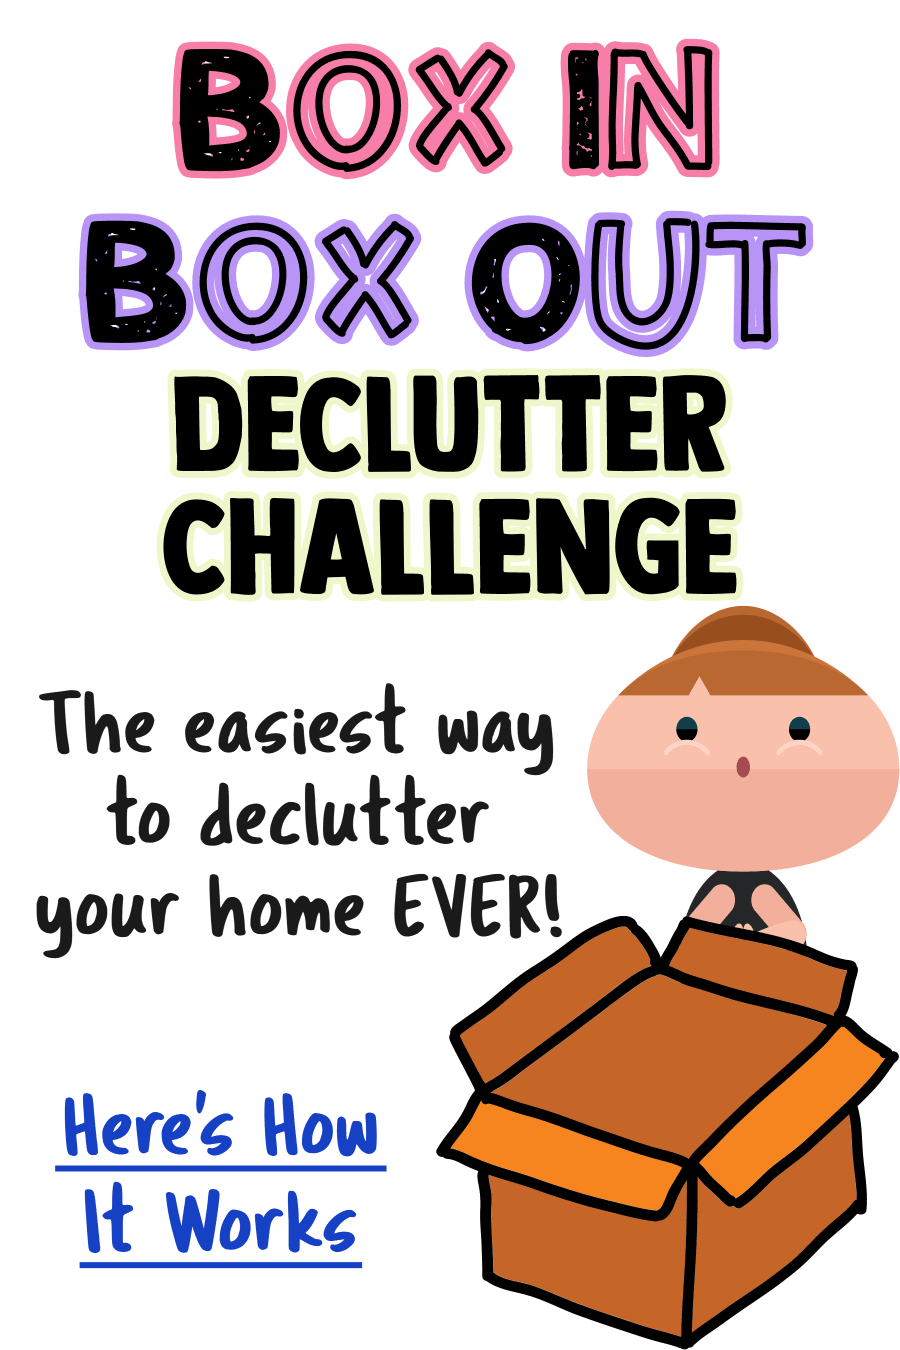 Decluttering Ideas To Easily Declutter and Organize Your Home - All the organization ideas in the world won't work unless you declutter your home FIRST and KEEP it clean and clutter-free.  This easy Declutter Challenge helps you get rid of clutter the easy way and won't leave you feeling overwhelmed when organizing.  Declutter room by room with this simple declutter challenge from our Decluttering Club at Decluttering Your Life.